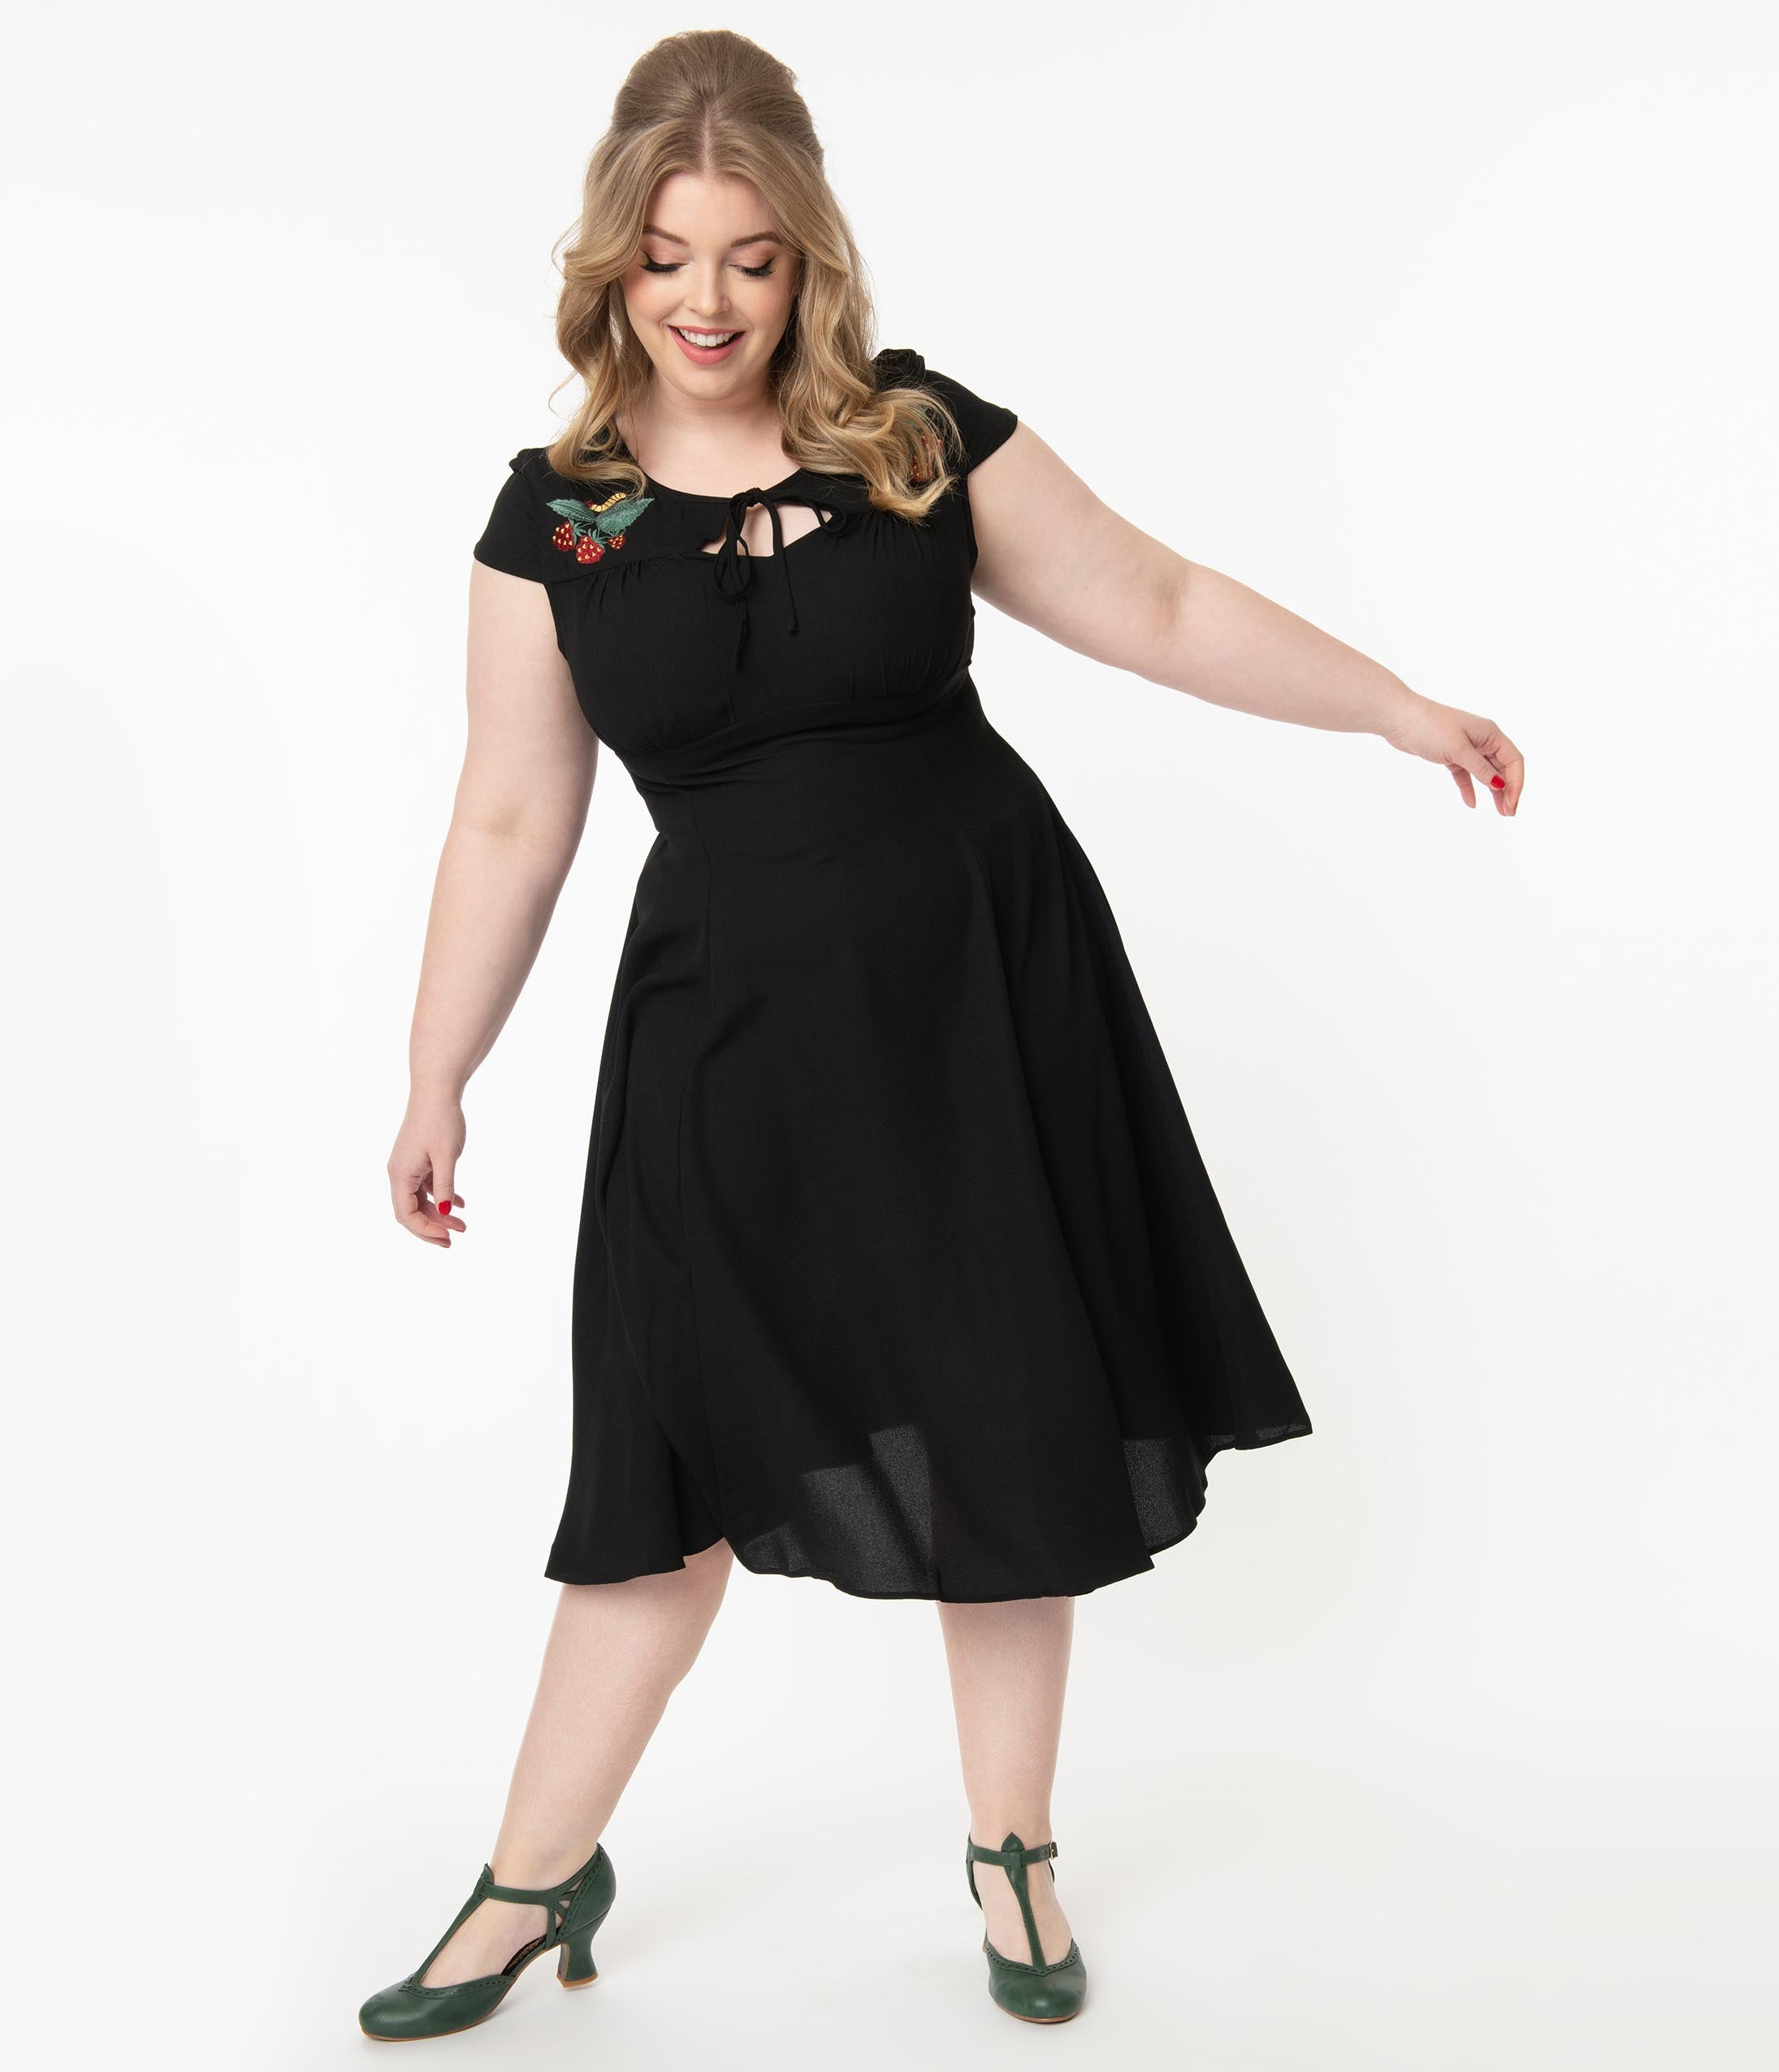 1940s Fashion Advice for Tall Women Plus Size 1940S Style Black  Strawberry Embroidery Adalee Swing Dress $74.00 AT vintagedancer.com